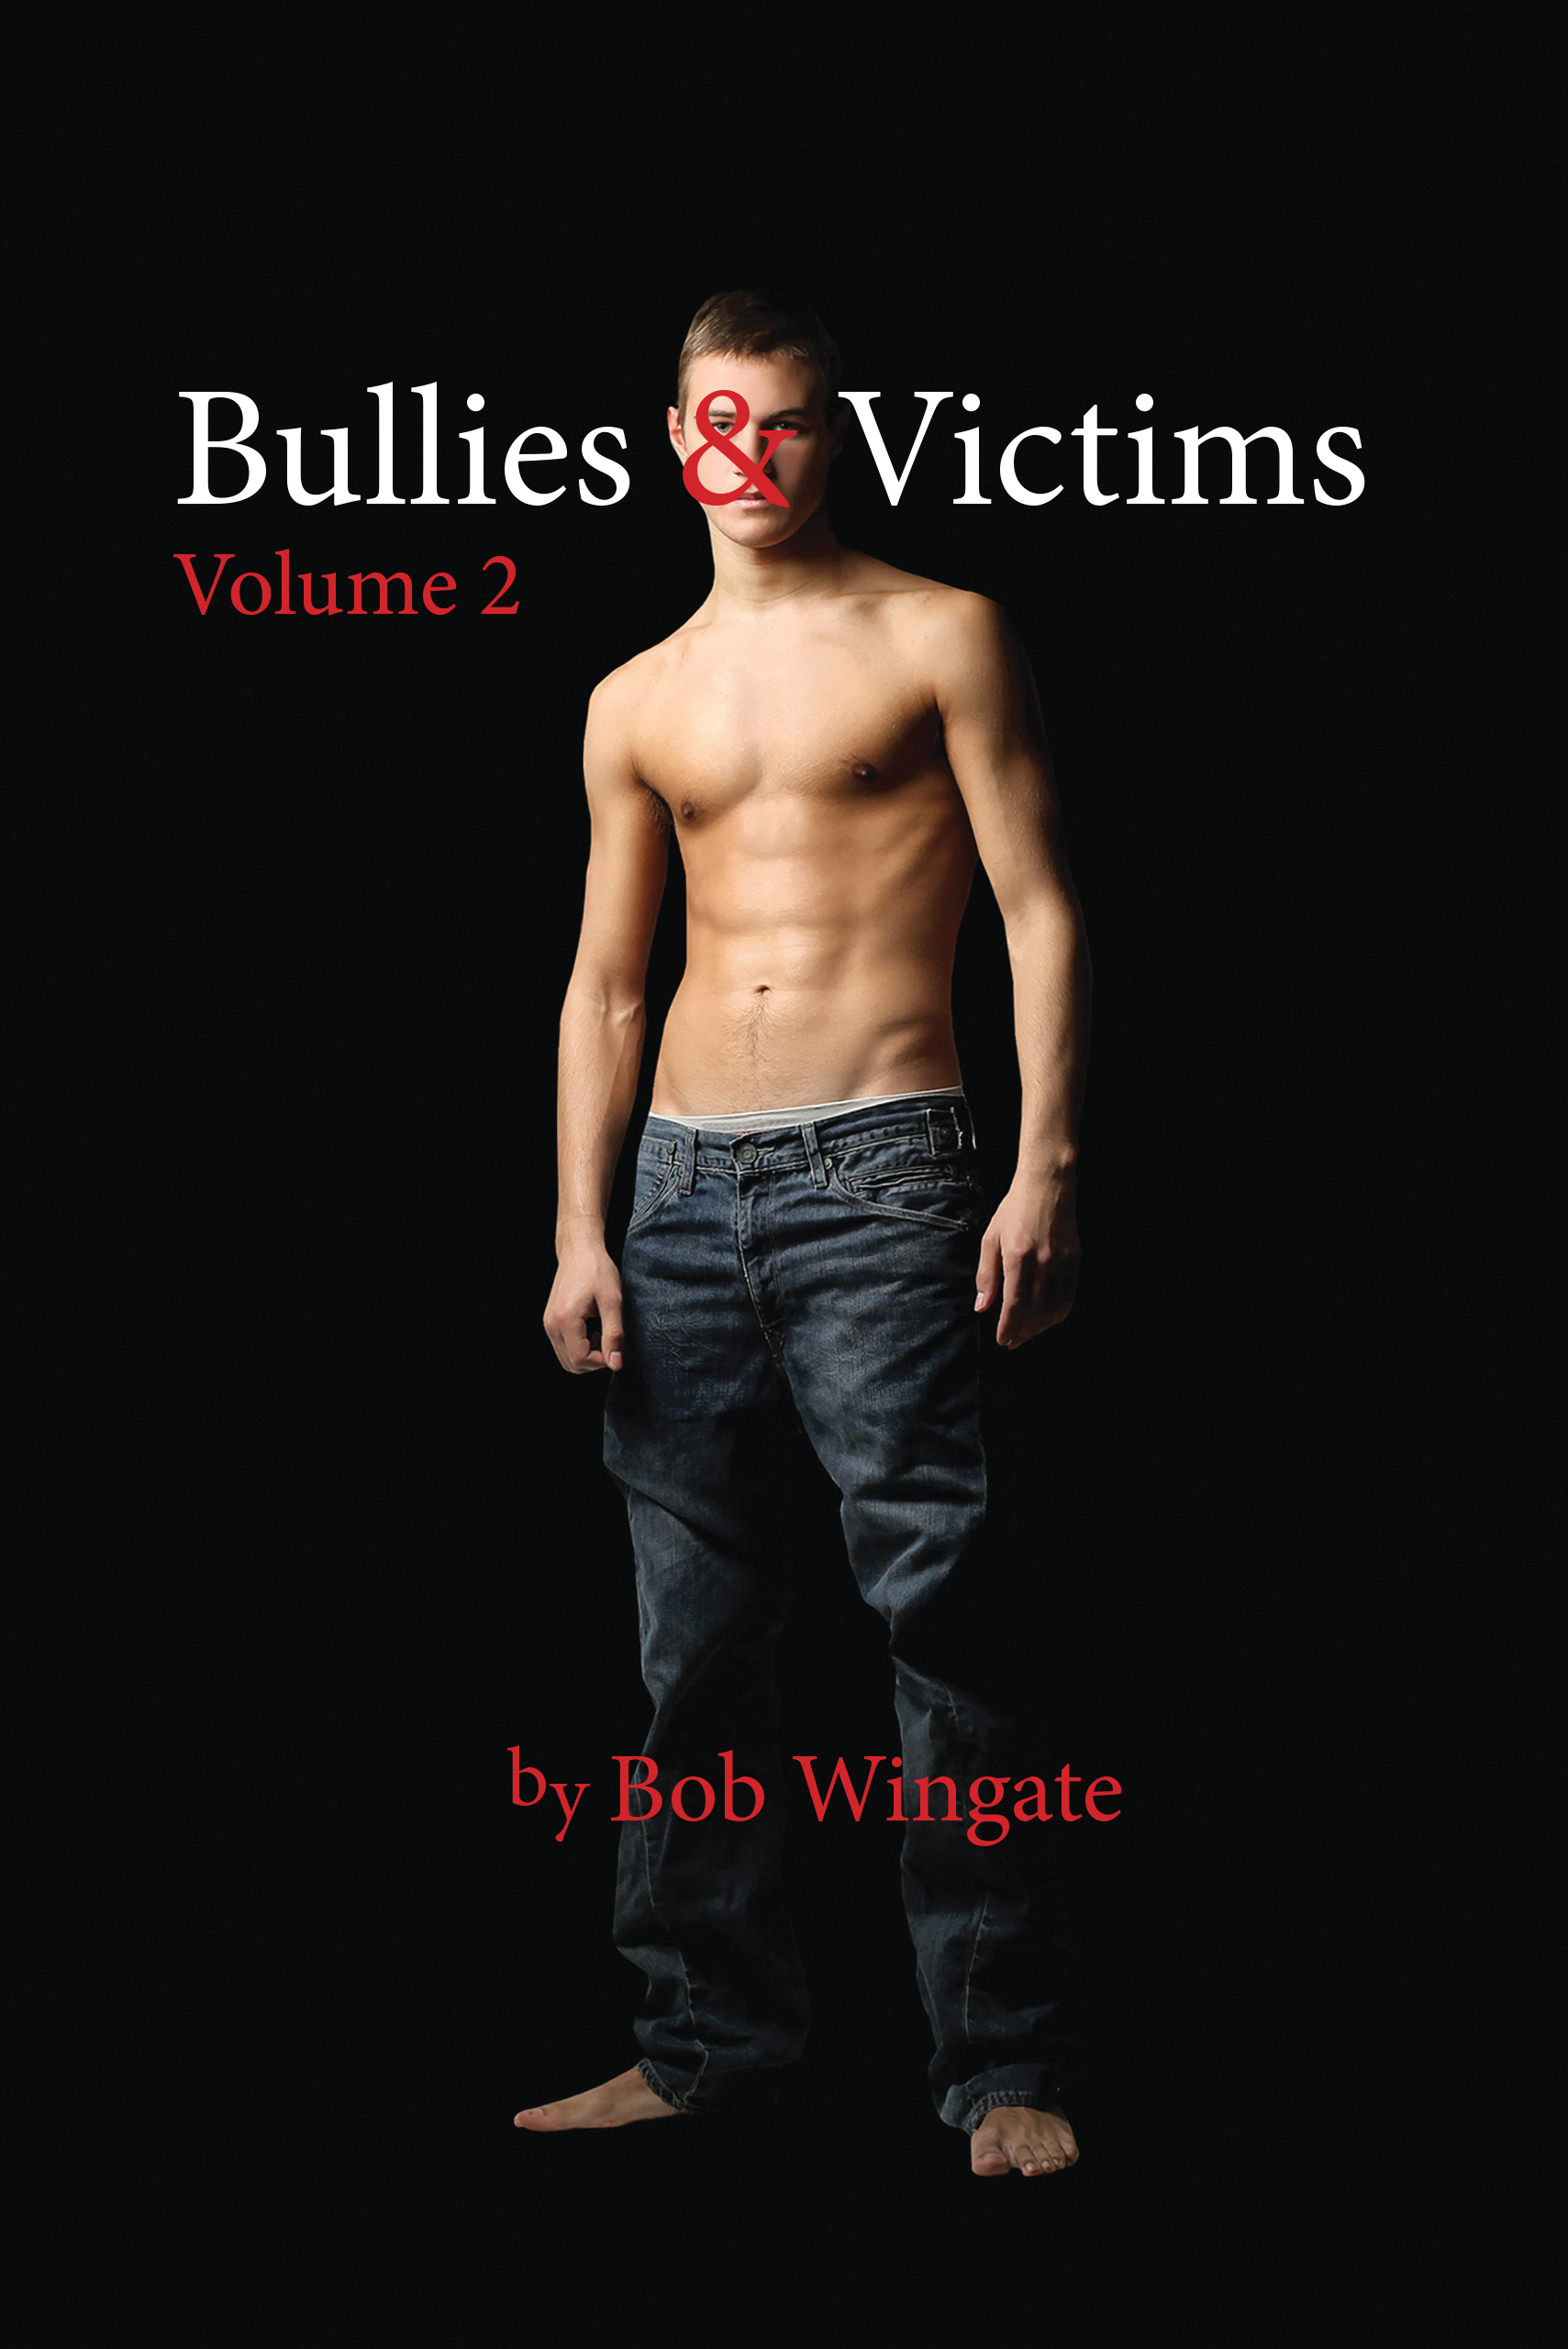 Bullies & Victims, Volume 2 (eBook)